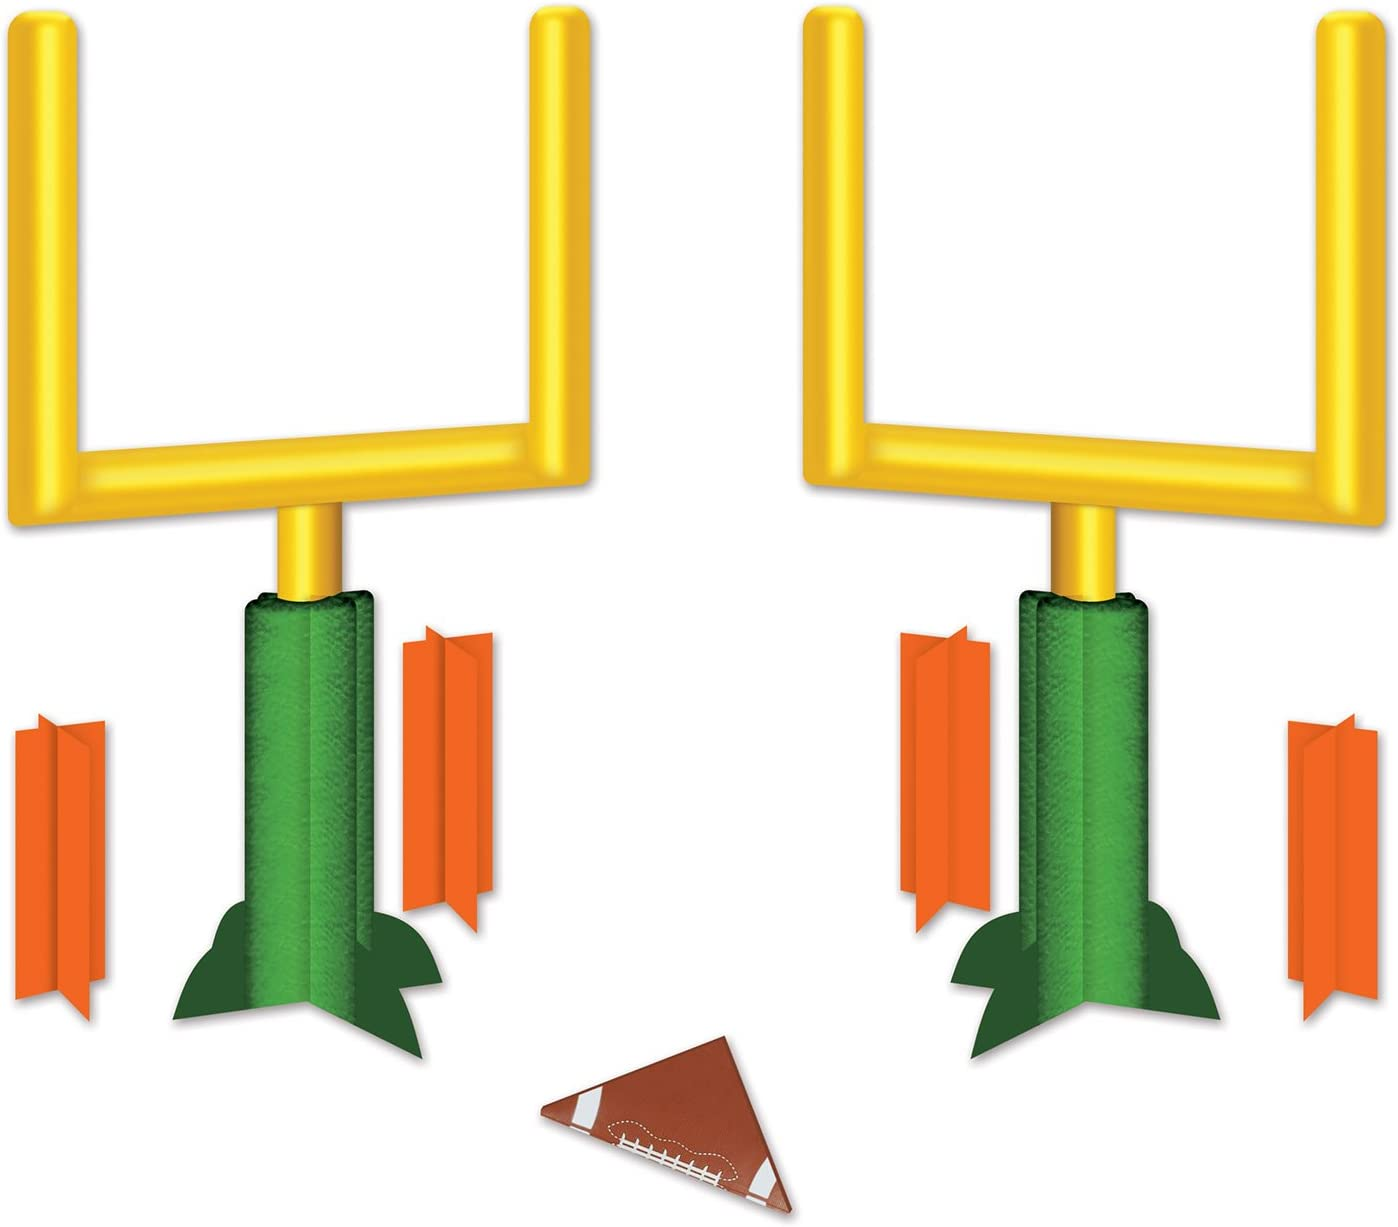 """Beistle Three Dimensional Game Day Goal Post Centerpieces 2 Piece Football Decorations Sports Party Supplies, 11"""", Green/Yellow/Orange/Brown/White"""